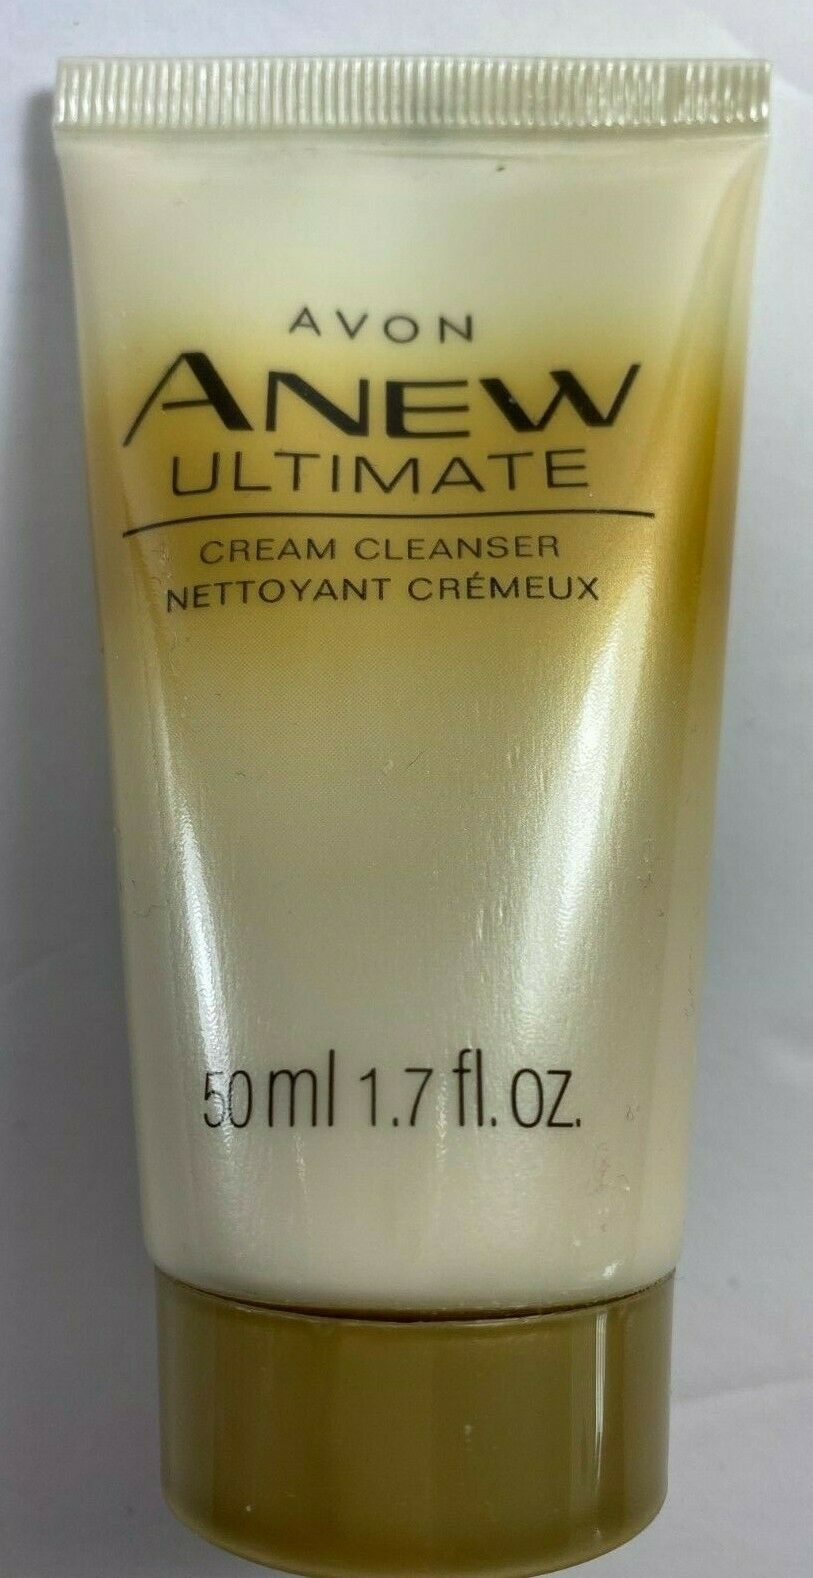 Primary image for Avon Anew Ultimate Cream Cleanser Travel Sample Size 1.7 fl oz